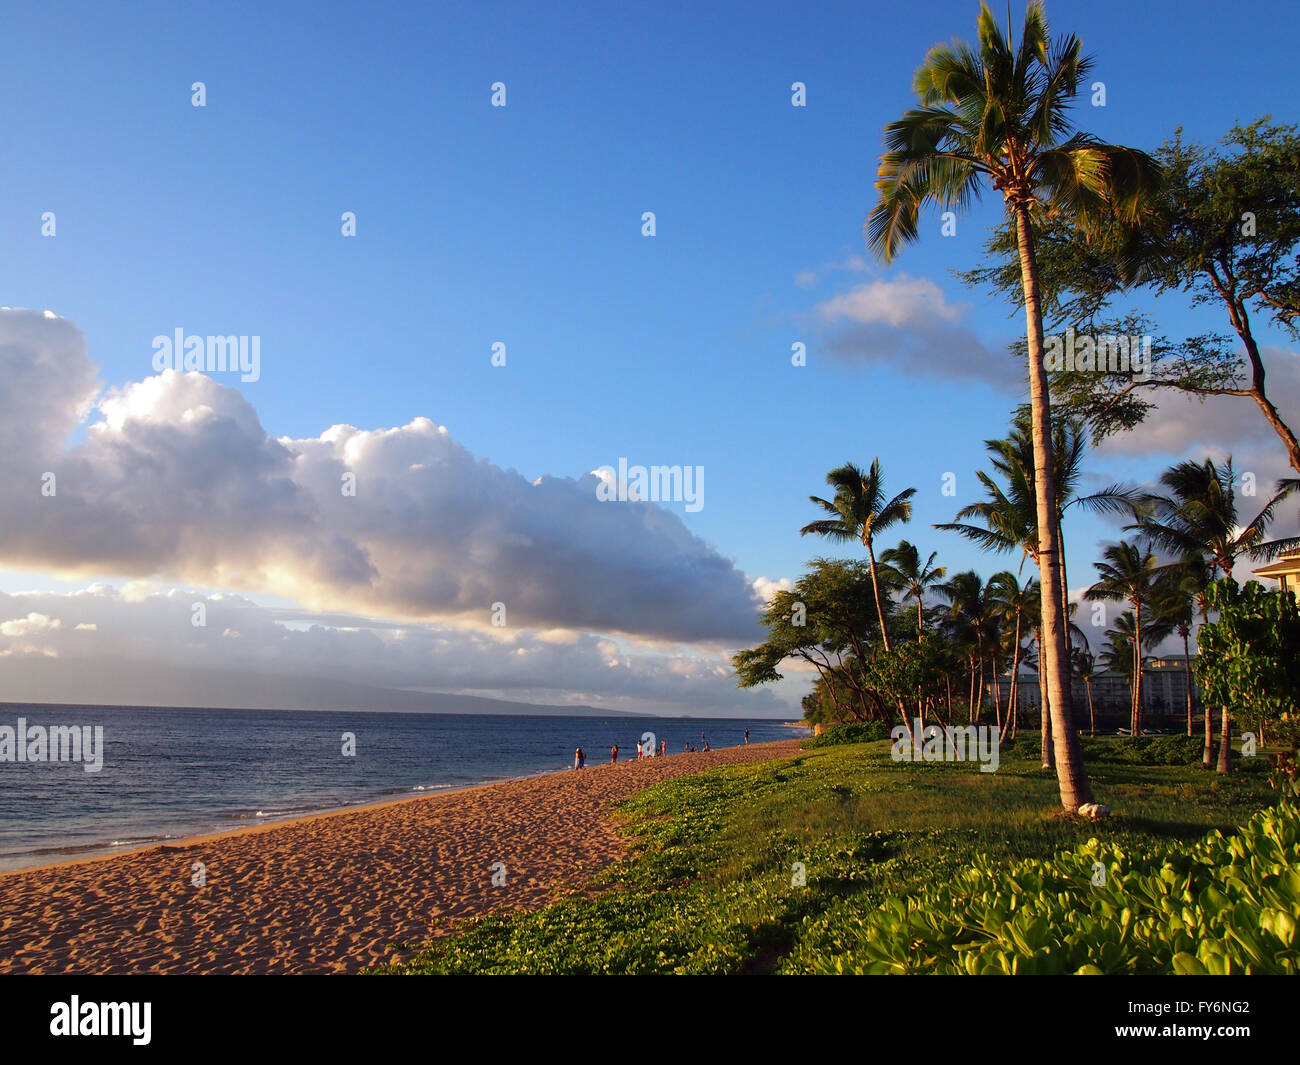 Kaanapali Beach at Dusk with gentle waves, people, hotels and trees. Island of Lanai can be seen in the distance - Stock Image